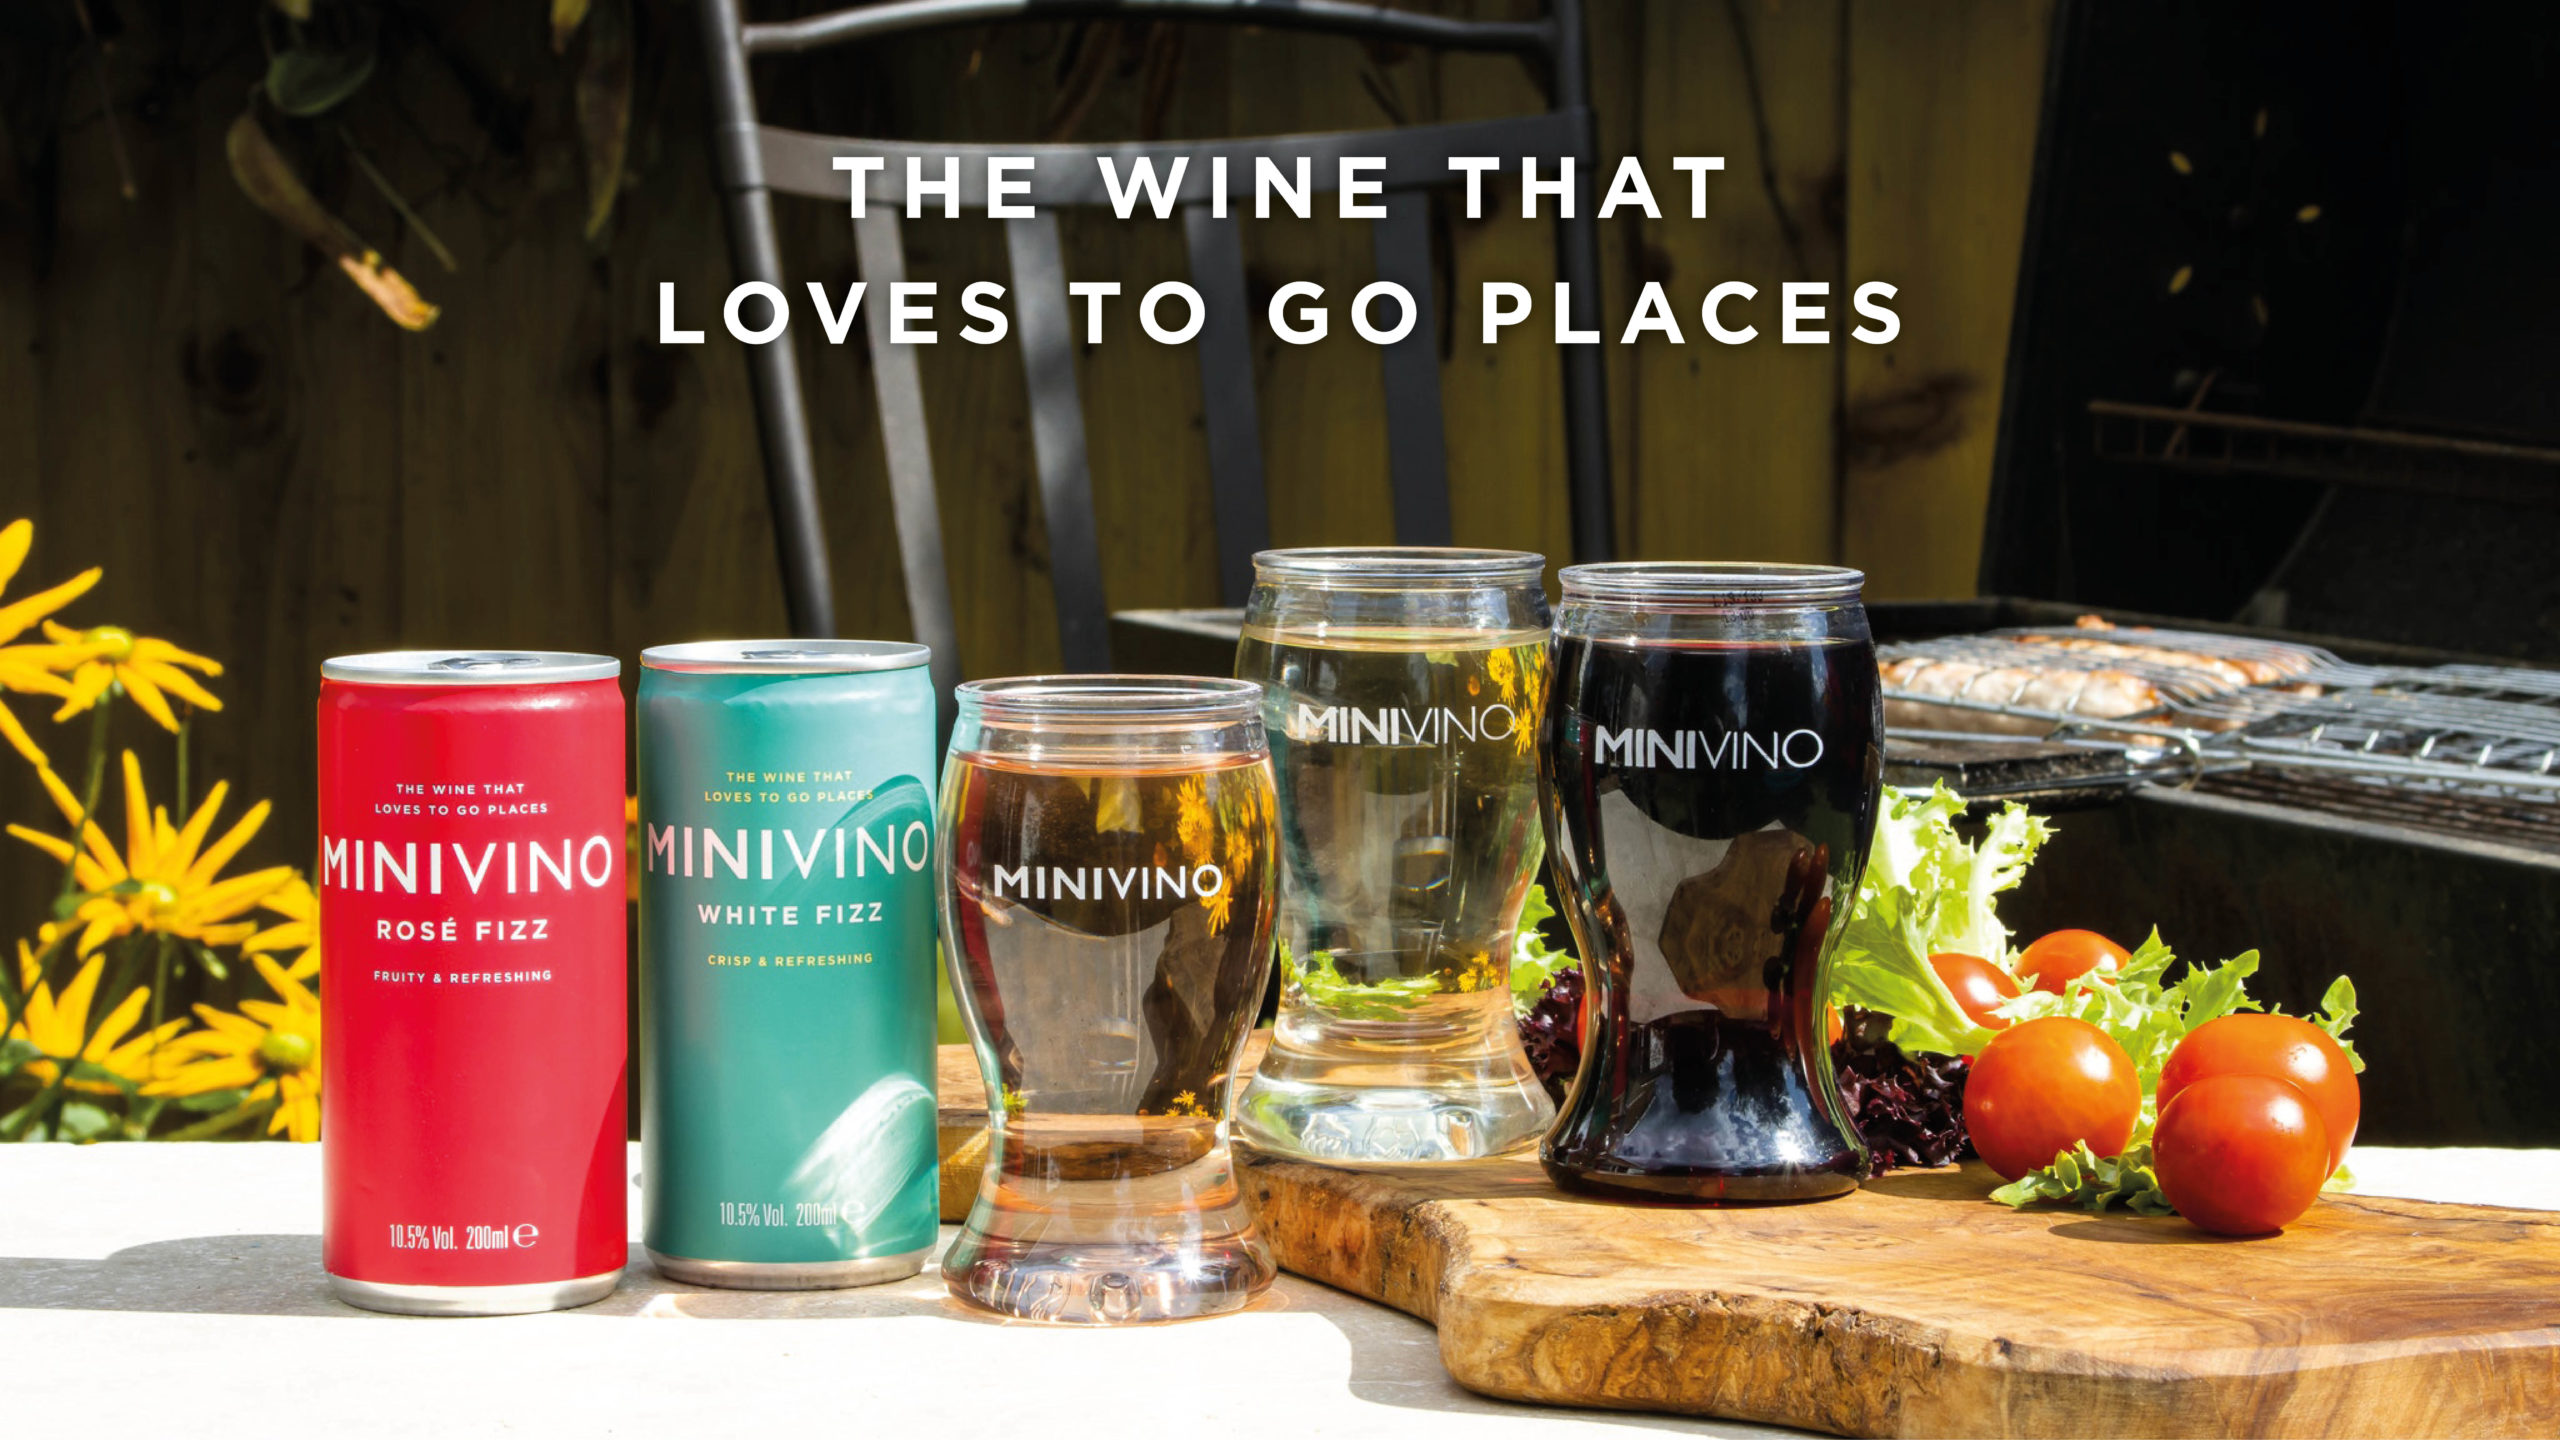 MINIVINO the wine that loves to go places